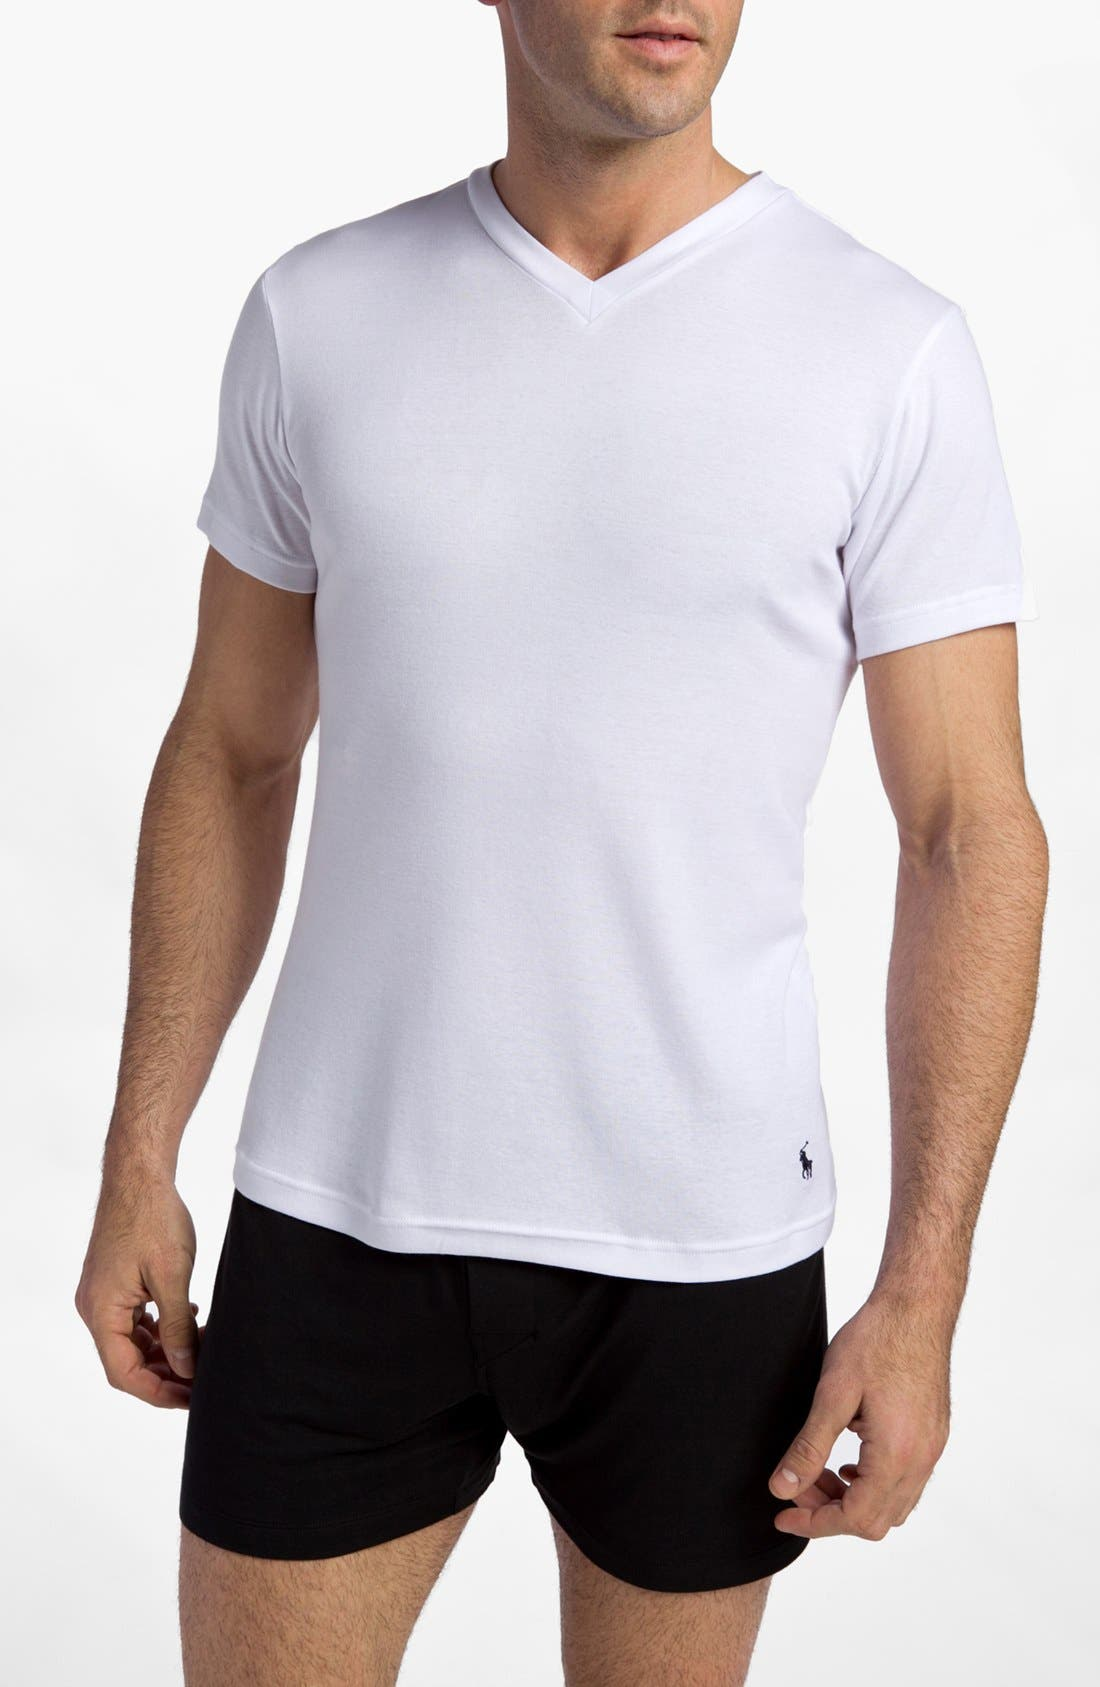 Polo Ralph Lauren 2-Pack V-Neck T-Shirt (Tall)